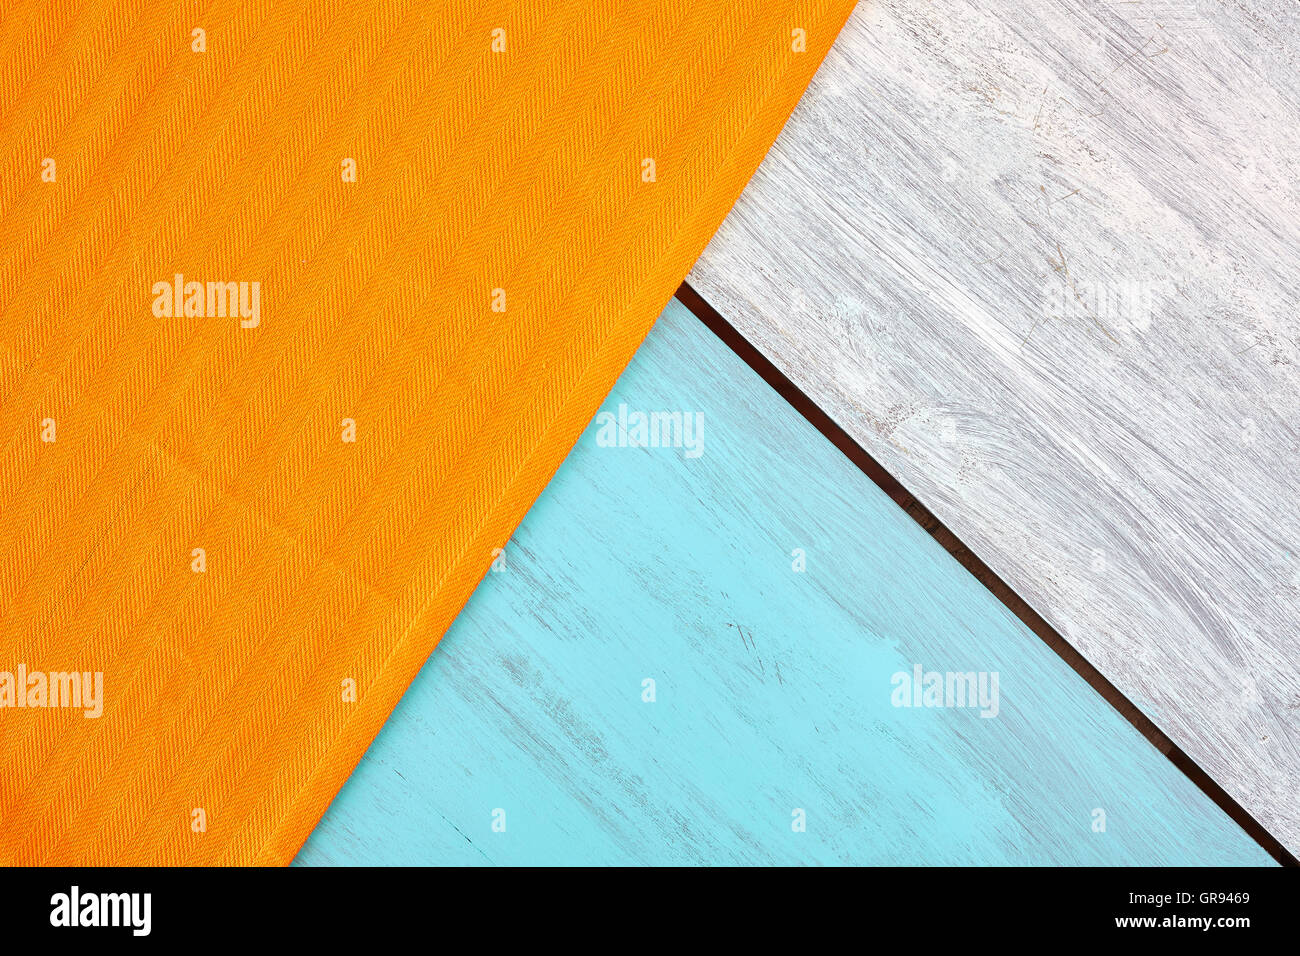 Rustic blue and white painted wooden table with a orange tablecloth, view from above, copy space. - Stock Image